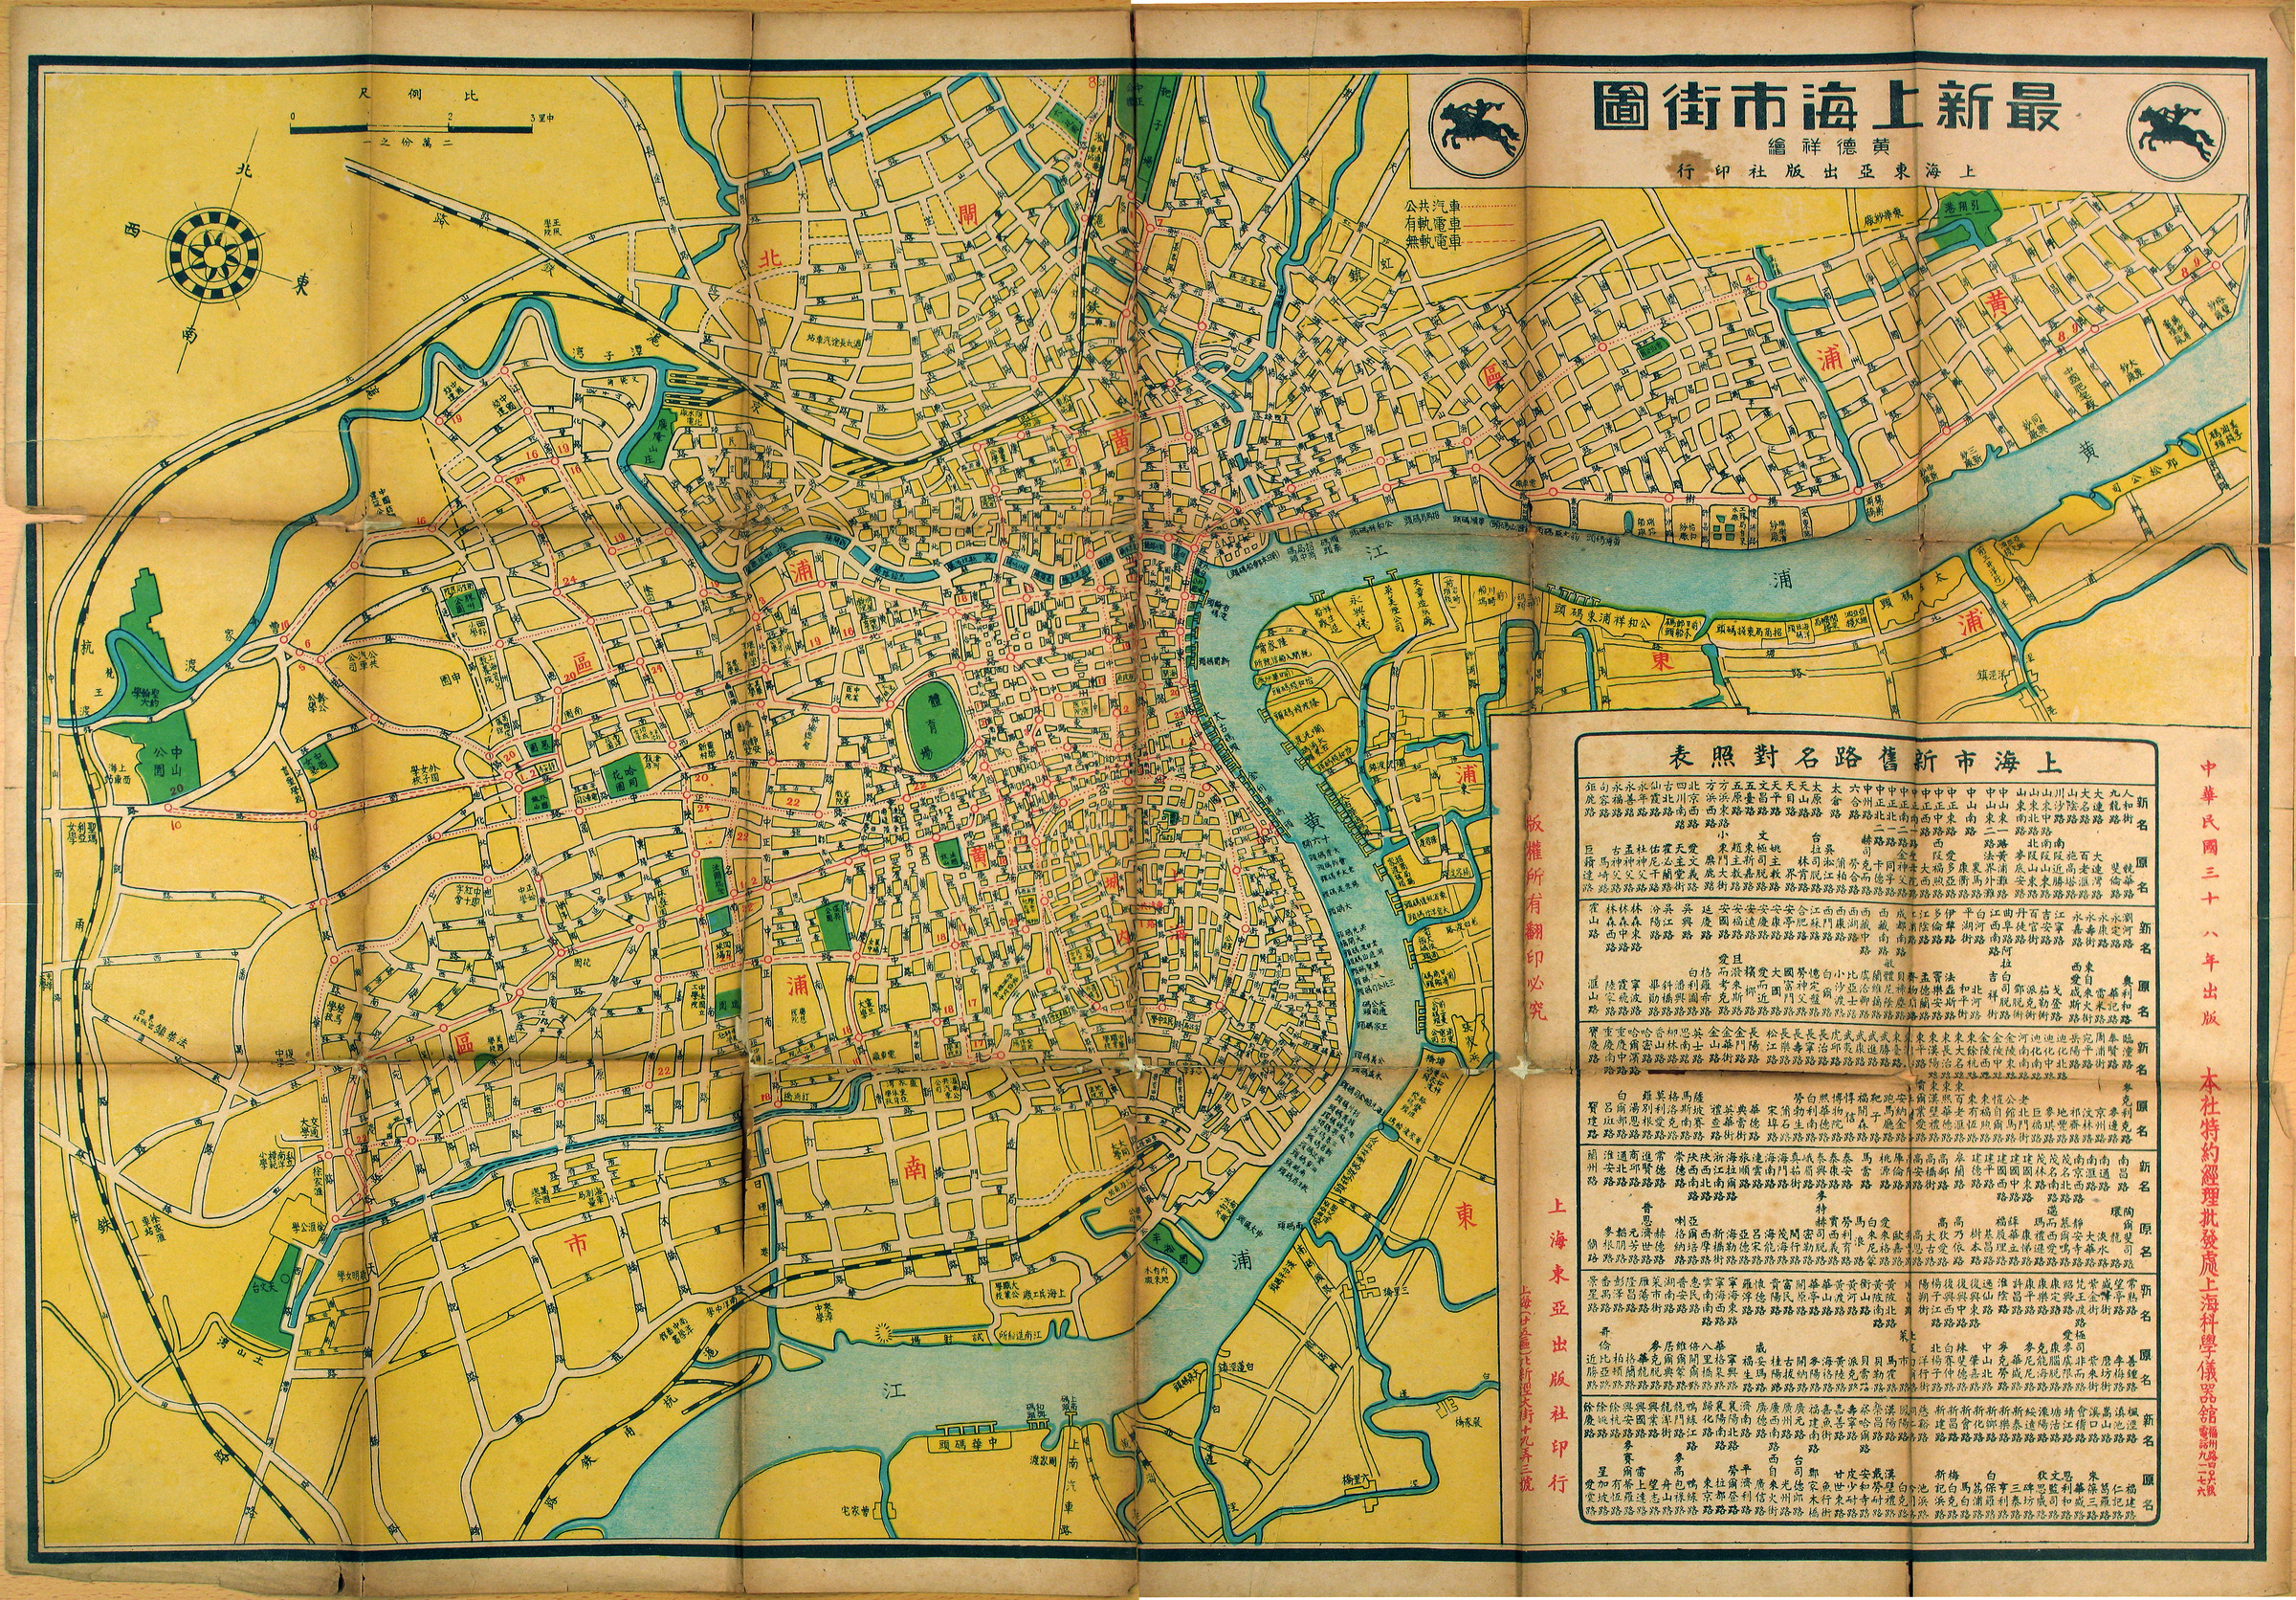 Shanghai In Post Maps Secrets Lies And Urban Icons - Pictures of maps